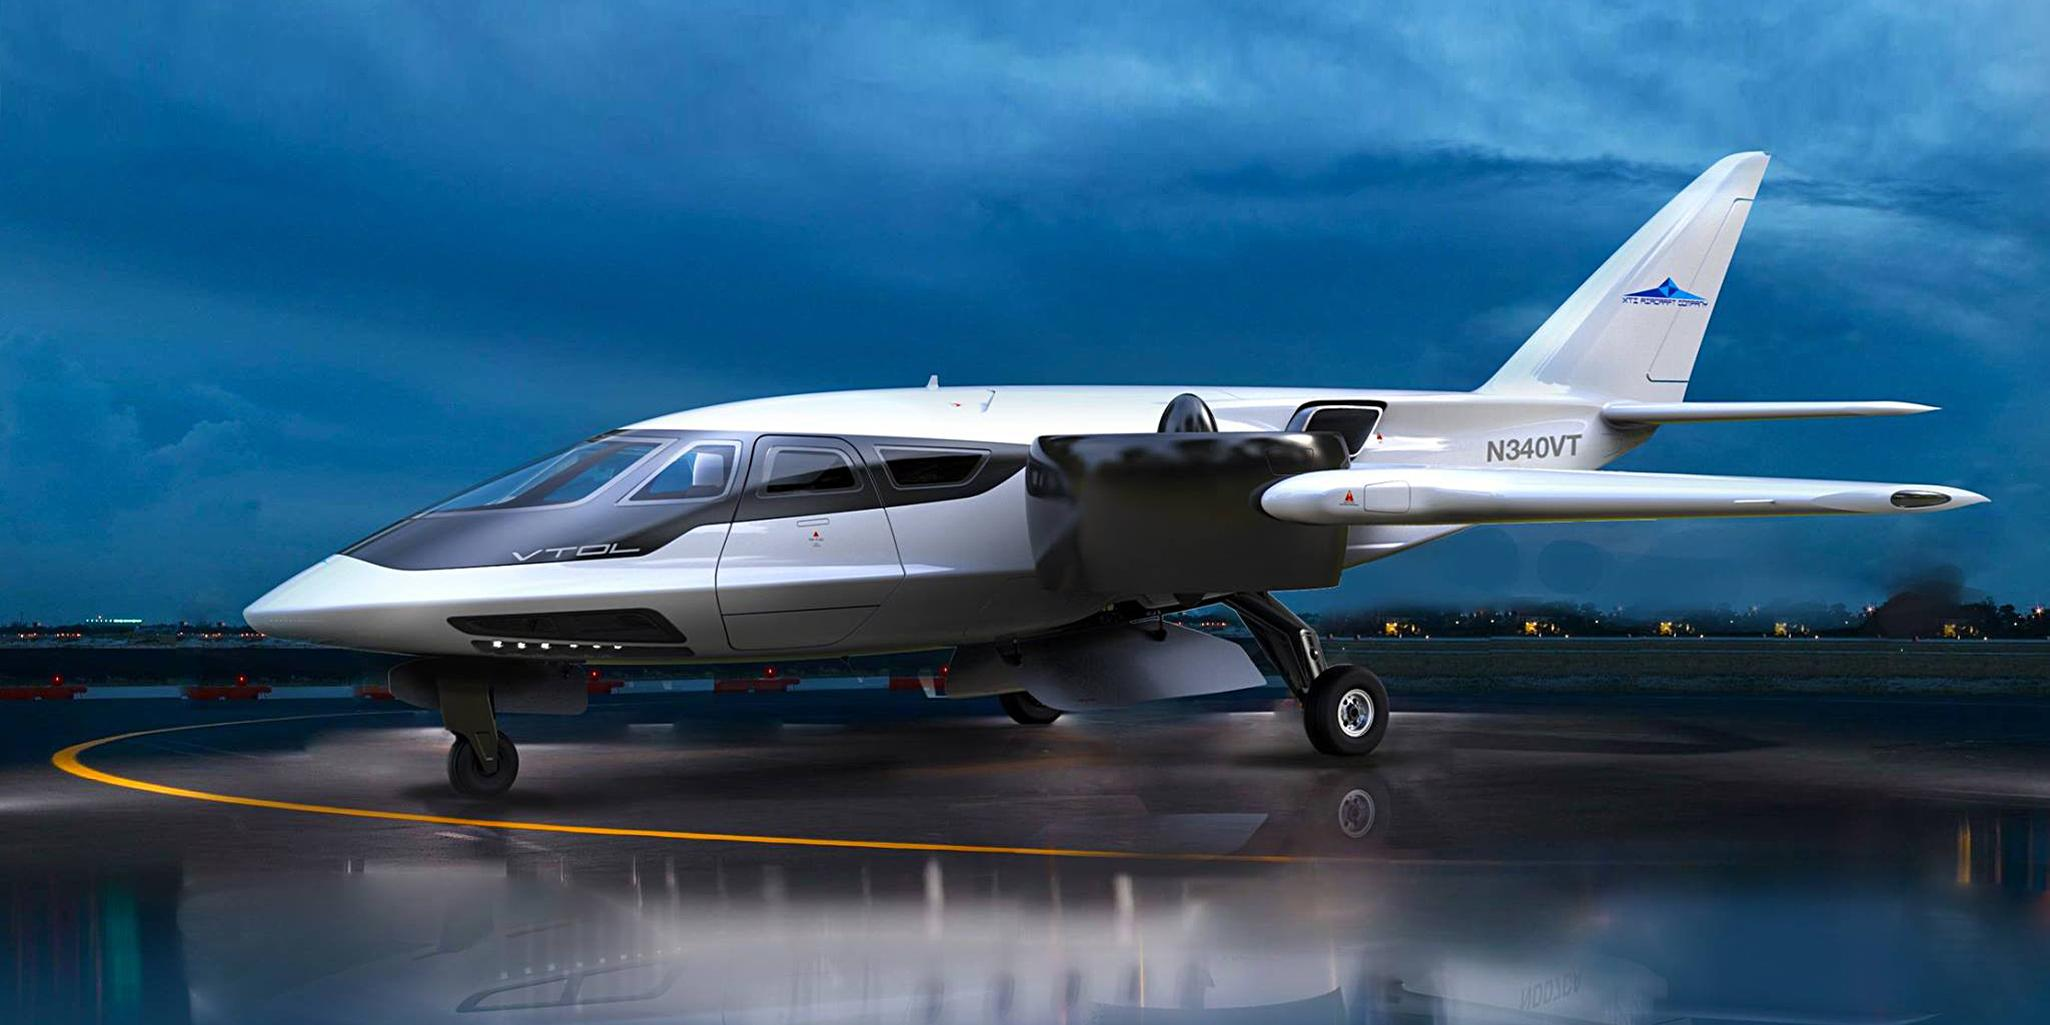 aircraft parked on ramp